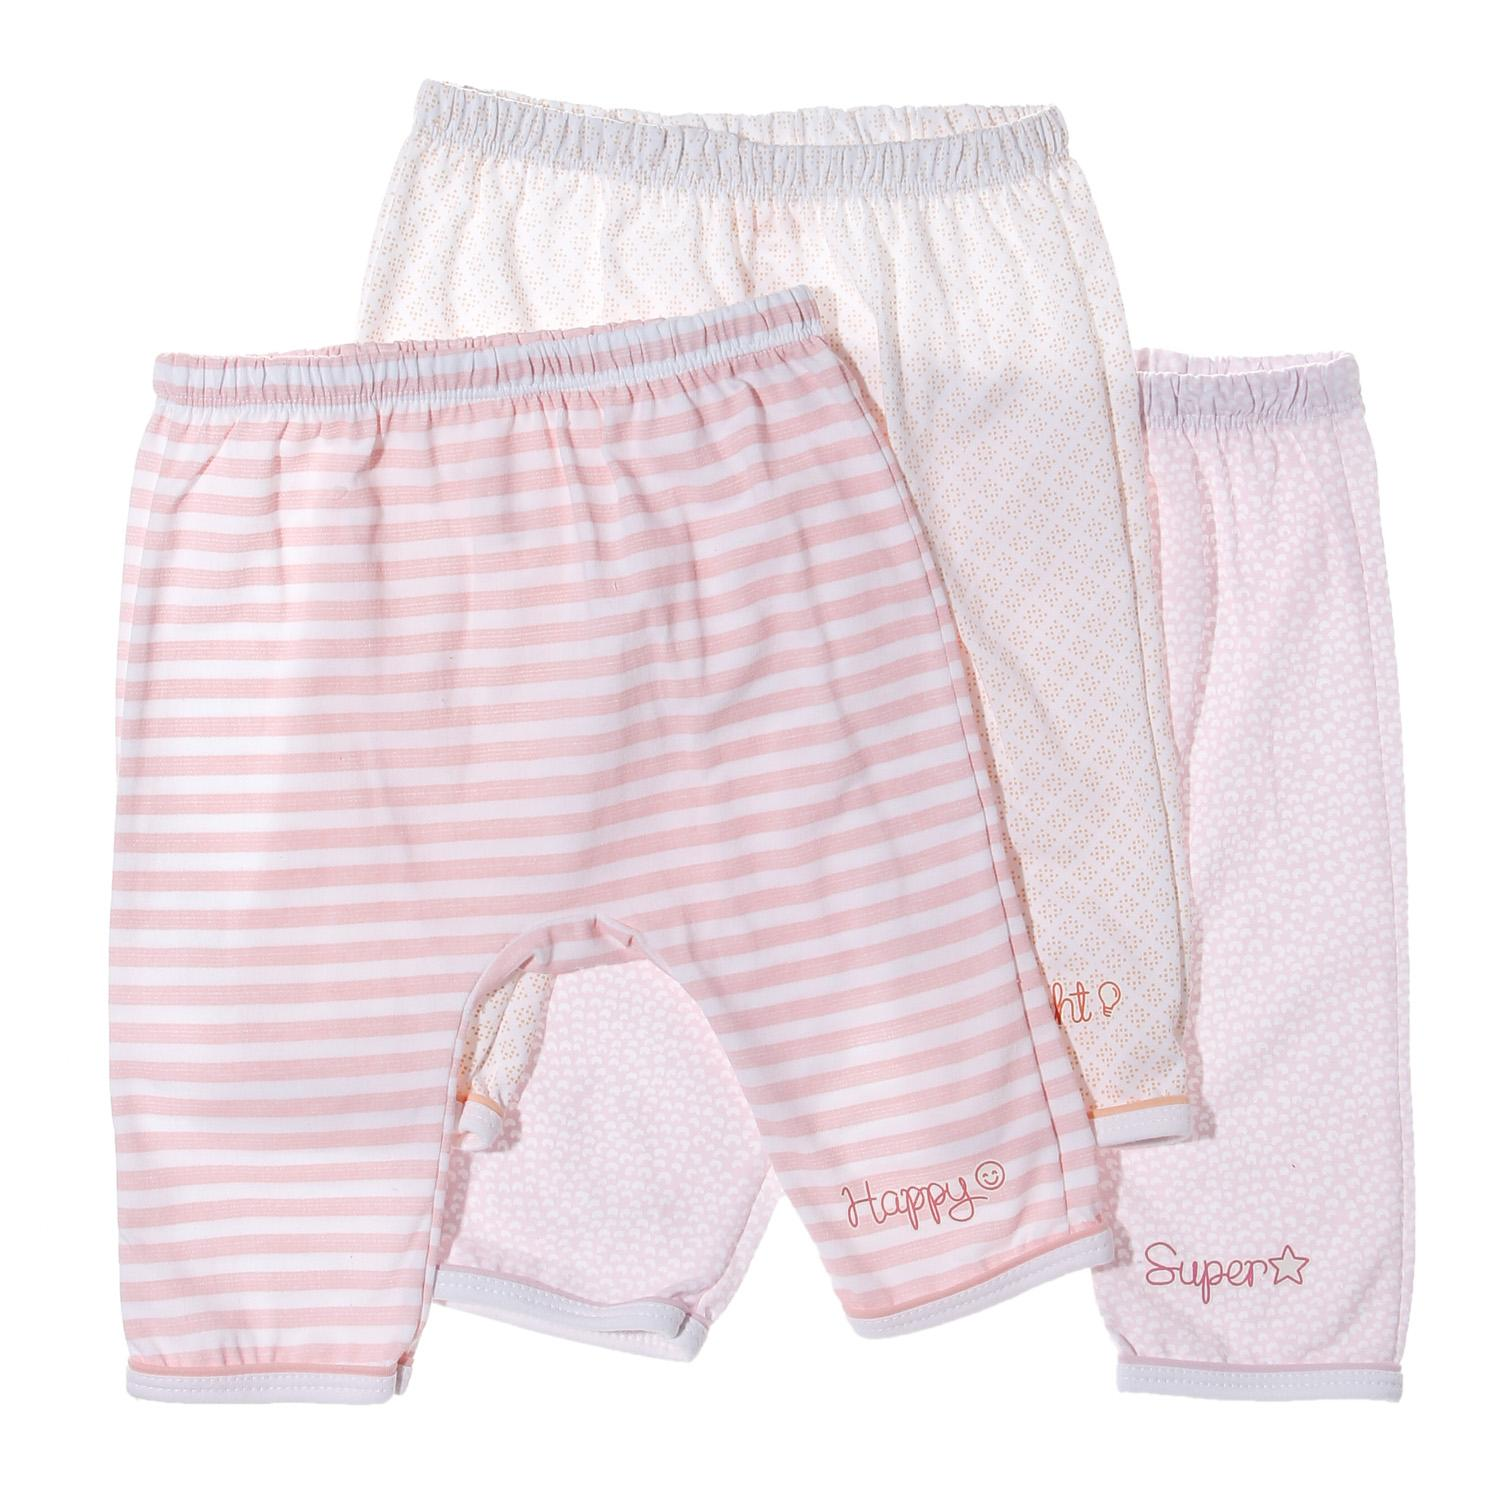 db29731e0 Girls Pajama Sets for sale - Kids Pajamas for Girls online brands ...